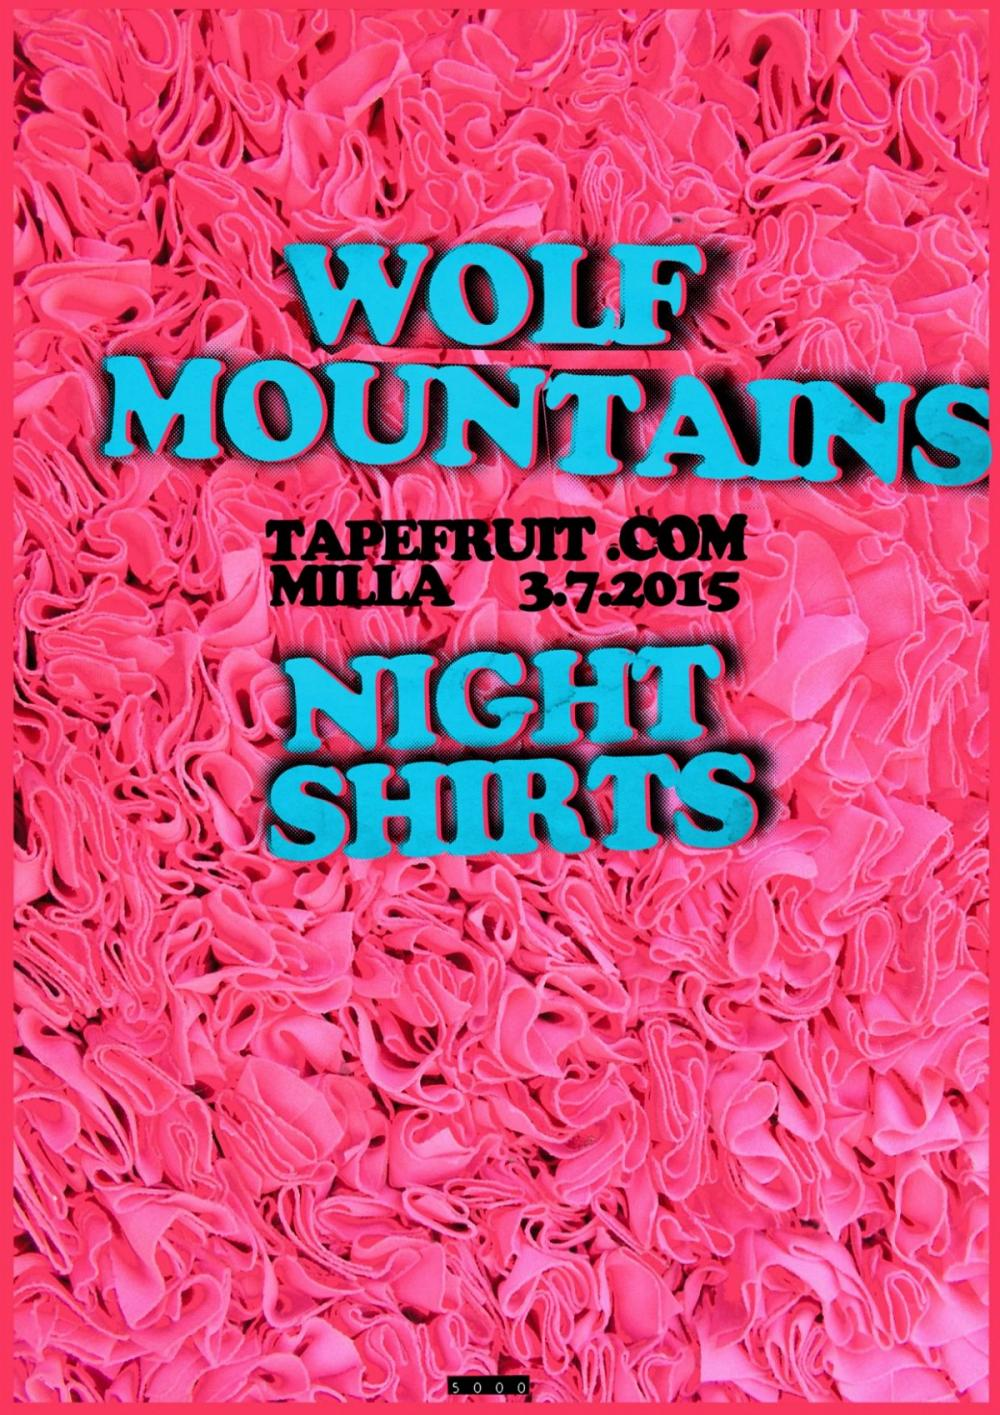 Tapefruit Konzert: Wolf Mountains + Night Shirts | 03.07.2015 @ Milla Club